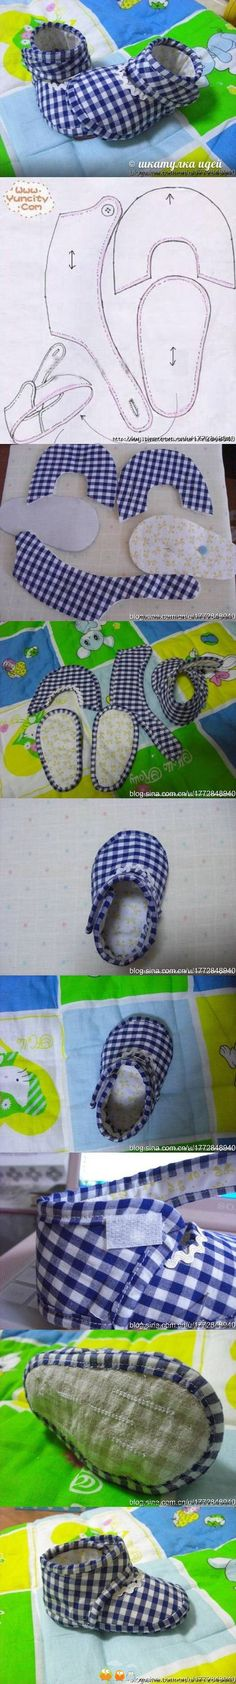 67 Ideas For Baby Diy Shoes Slippers Baby Patterns, Doll Patterns, Sewing Patterns, Baby Diy Projects, Baby Crafts, Kids Crafts, Sewing Tutorials, Sewing Crafts, Sewing Projects